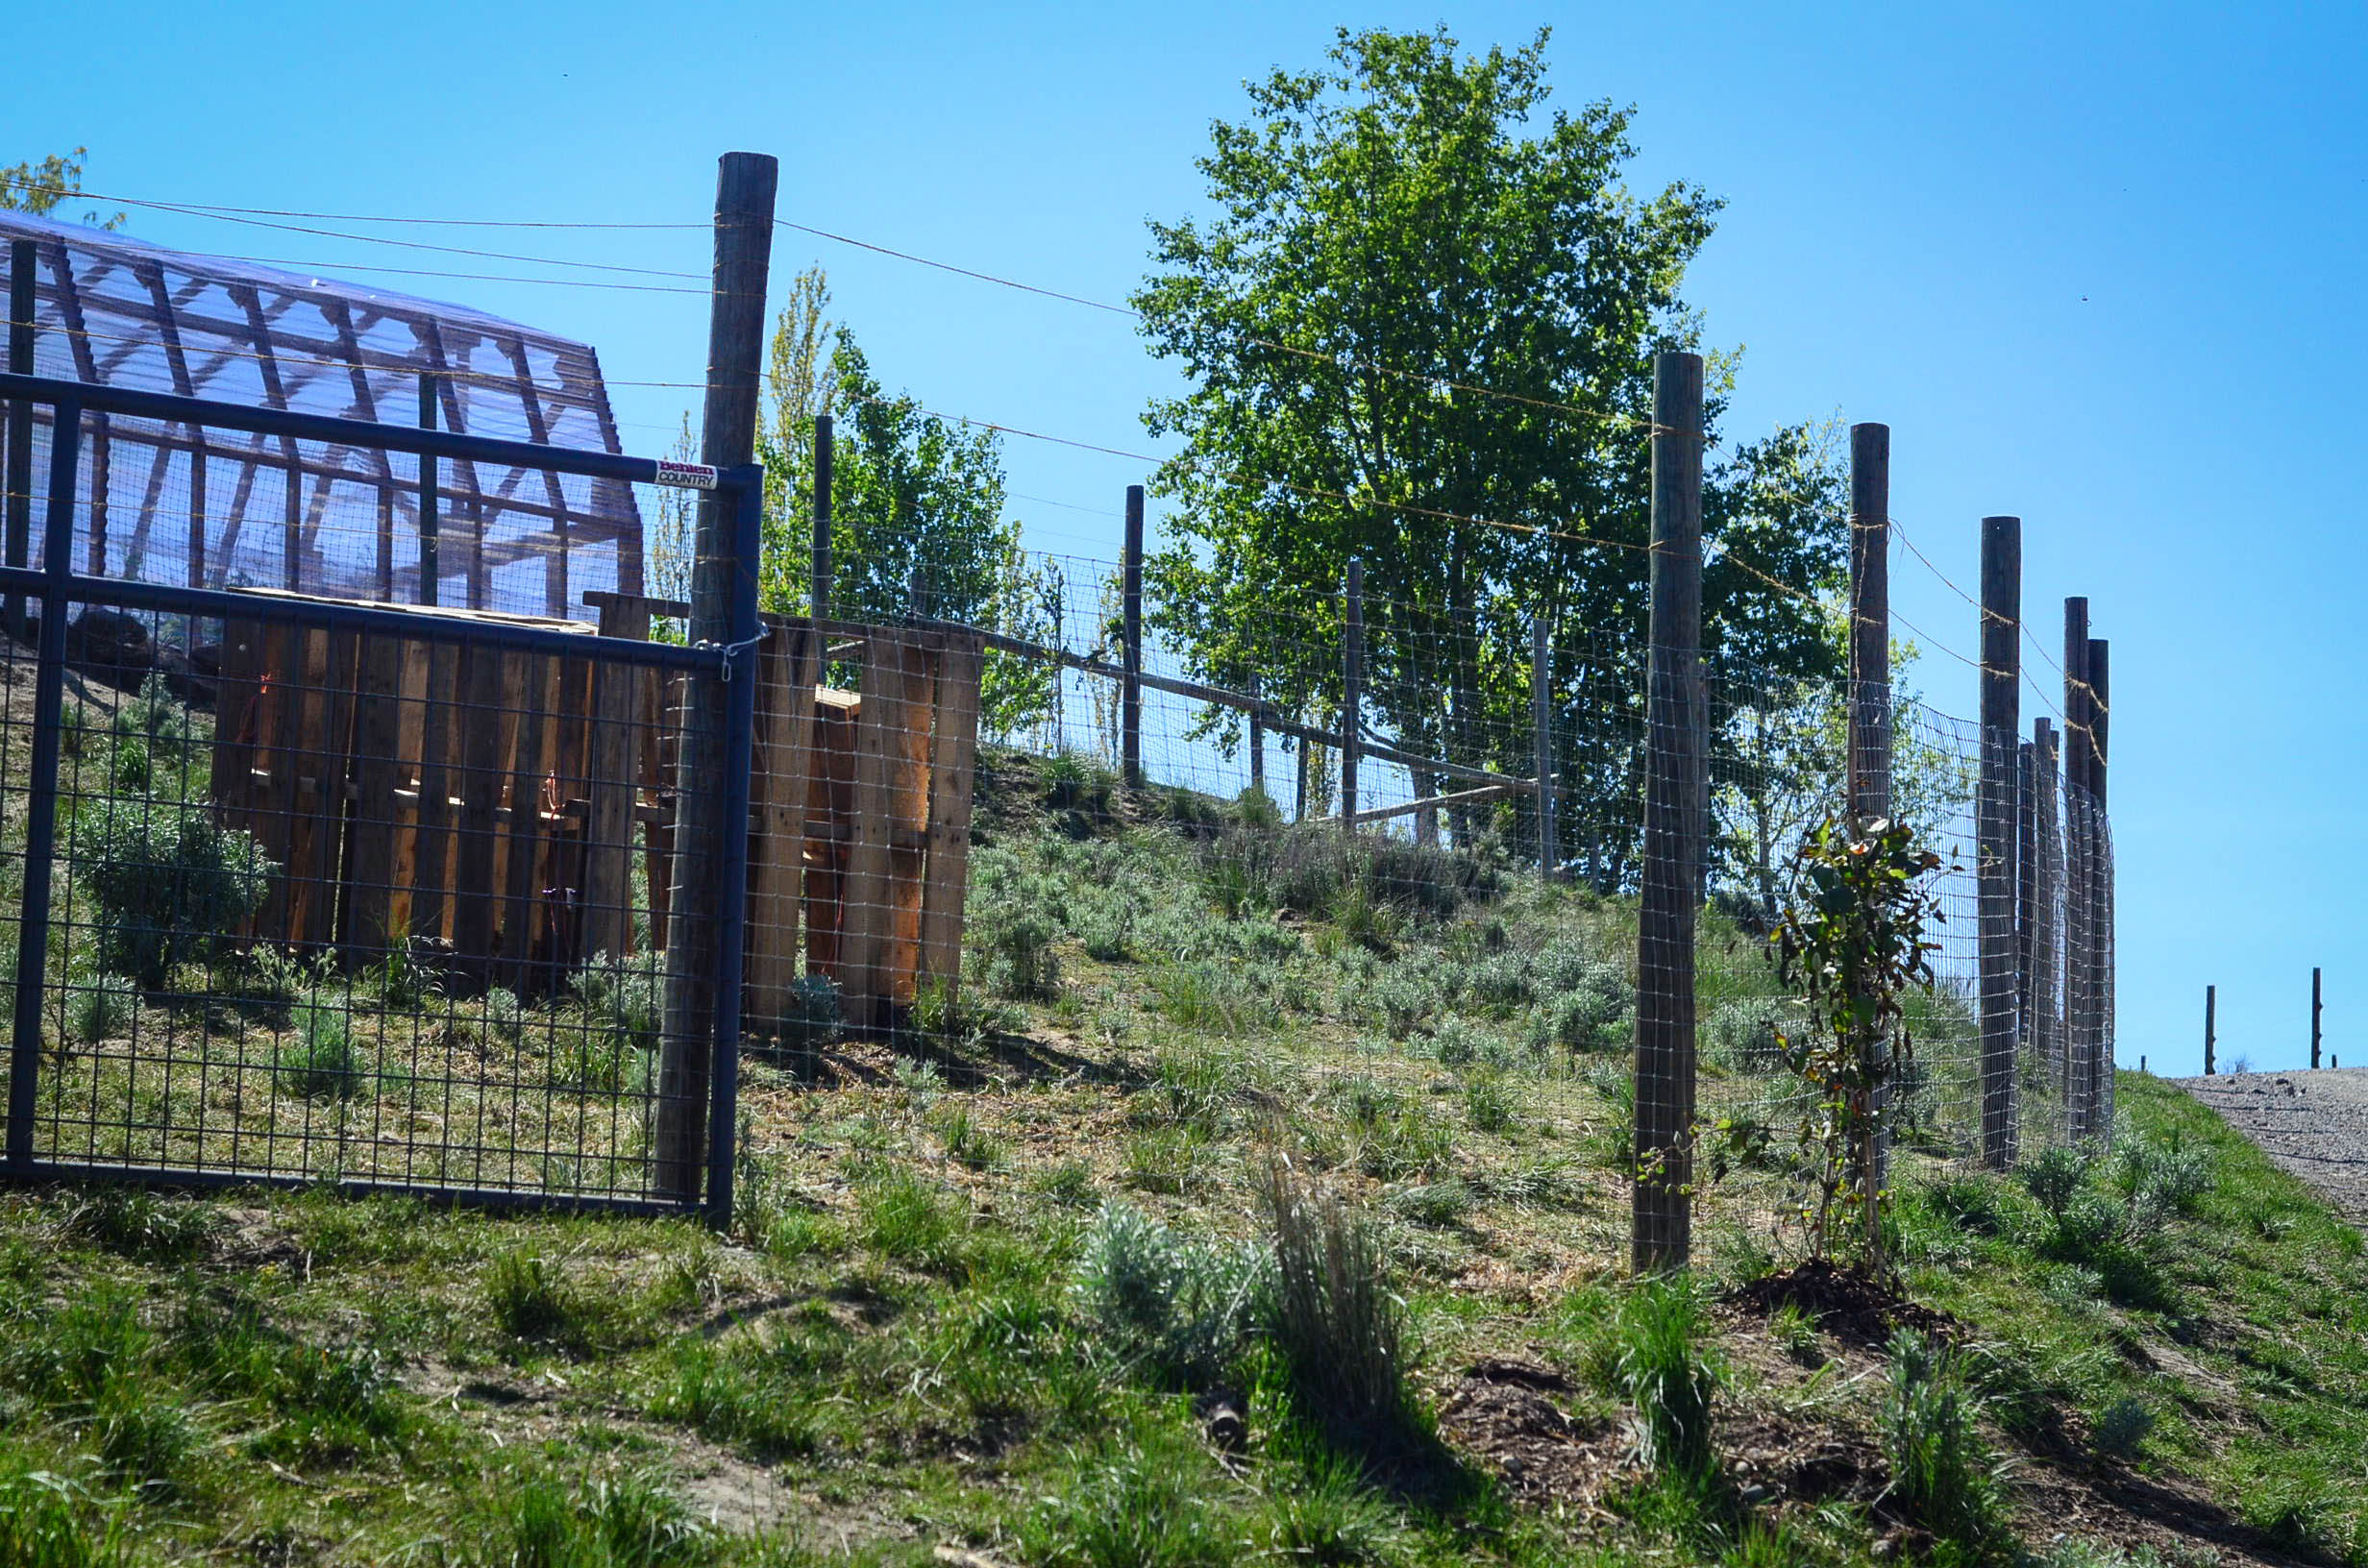 Building A Chicken Run And Why I Hate Free Range Chickens The Fourwire Electric Fence System Best Control Of Deer Access To Food Elliott Homestead